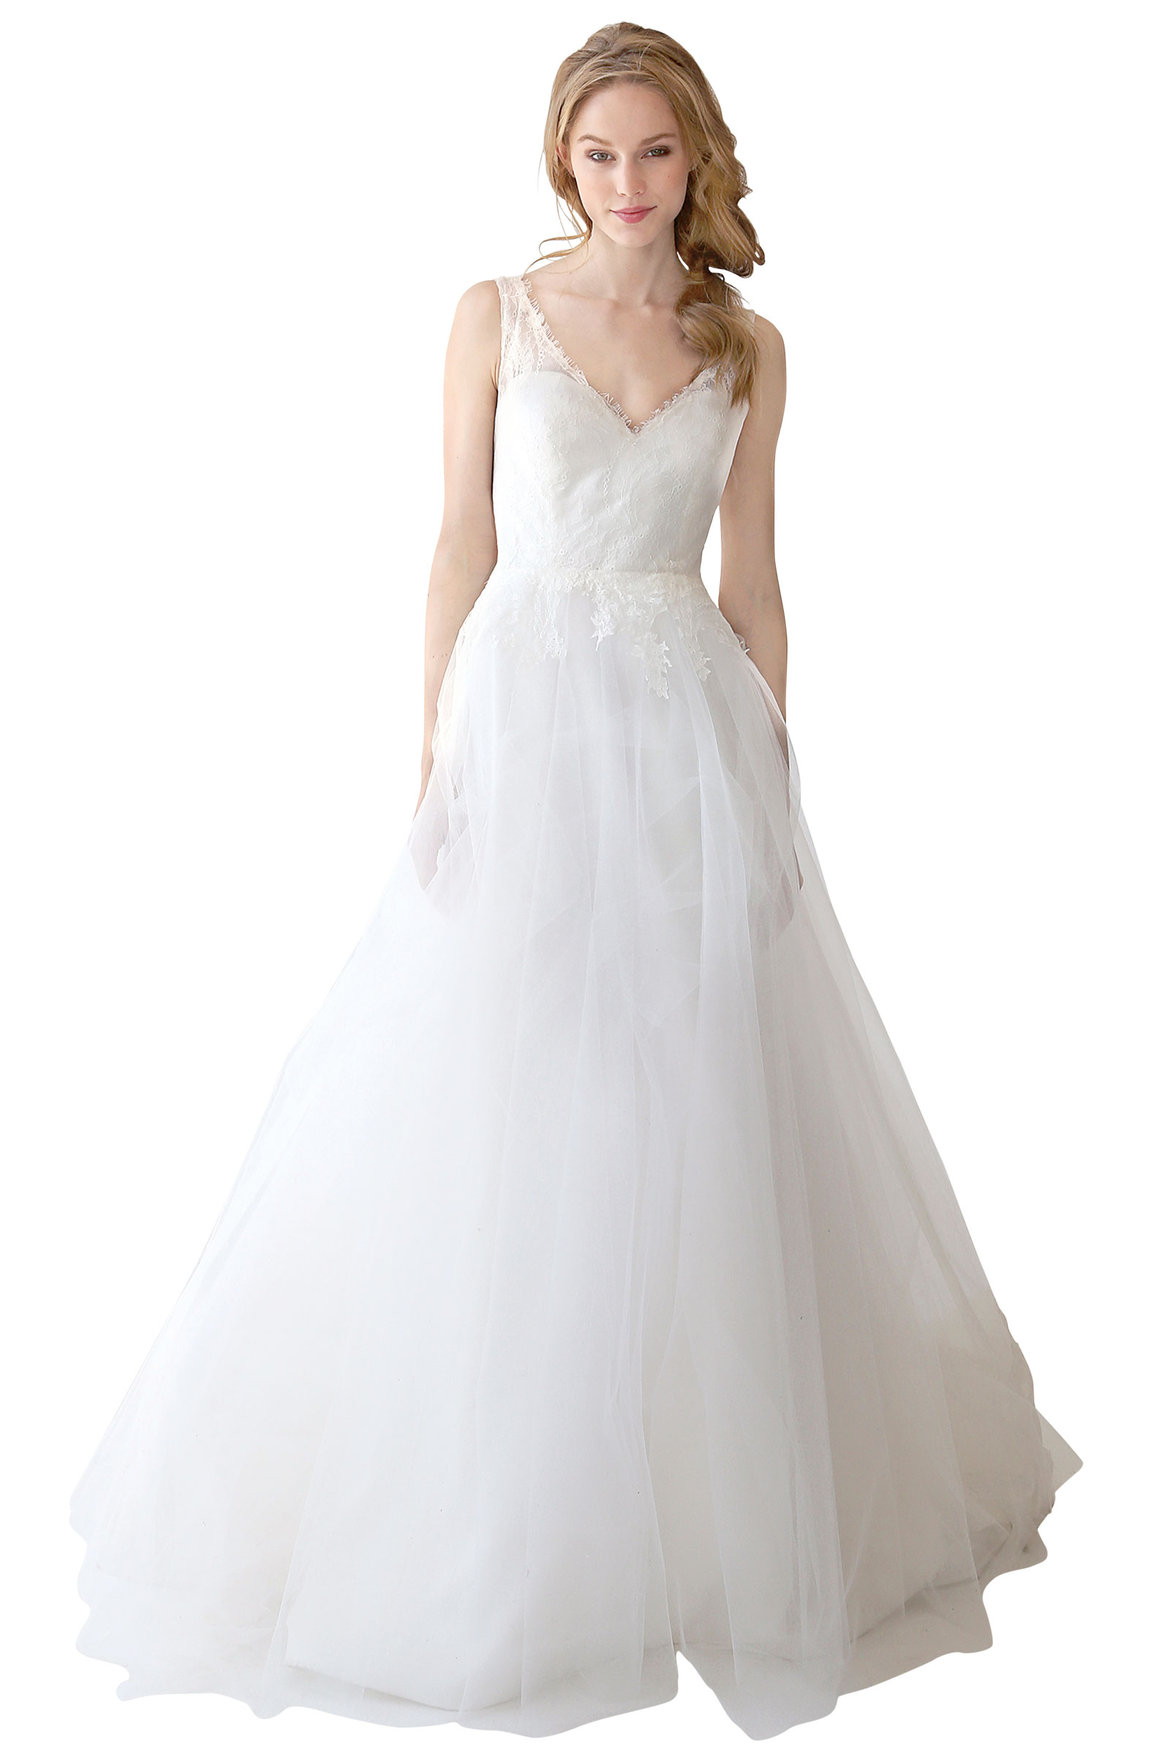 kelly faetanini wedding gown